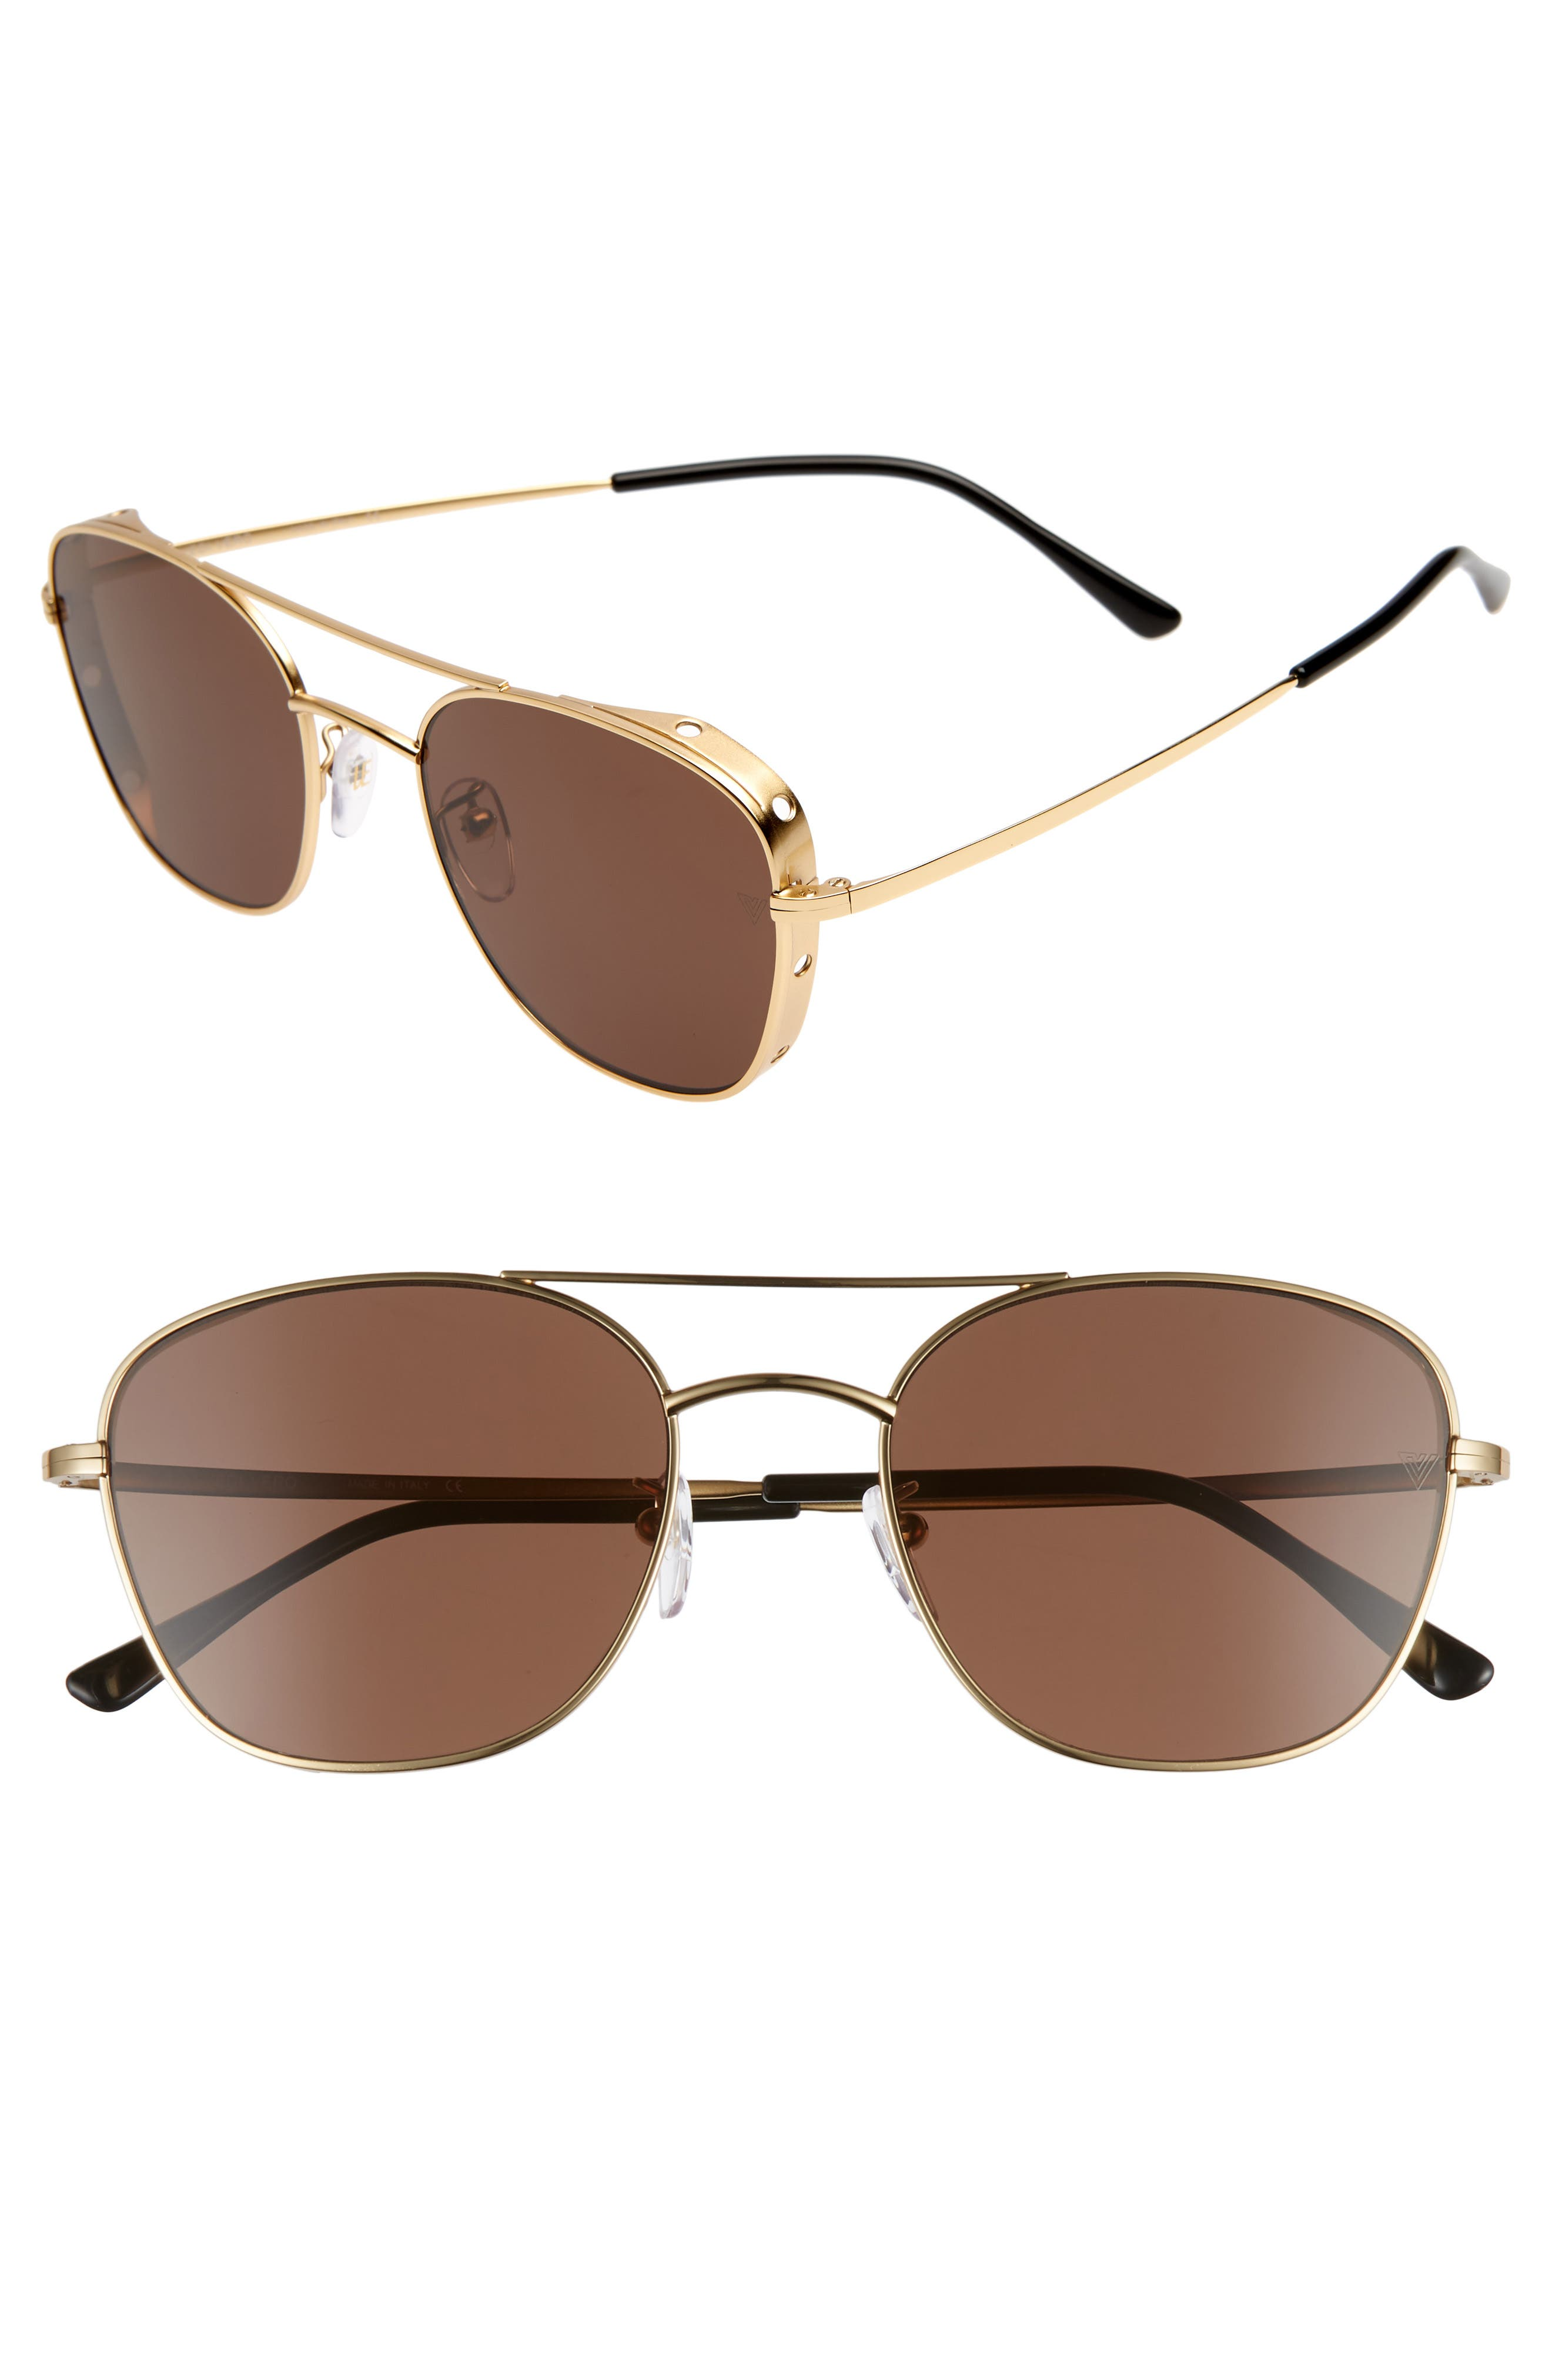 VEDI VERO 56Mm Aviator Sunglasses - Gold